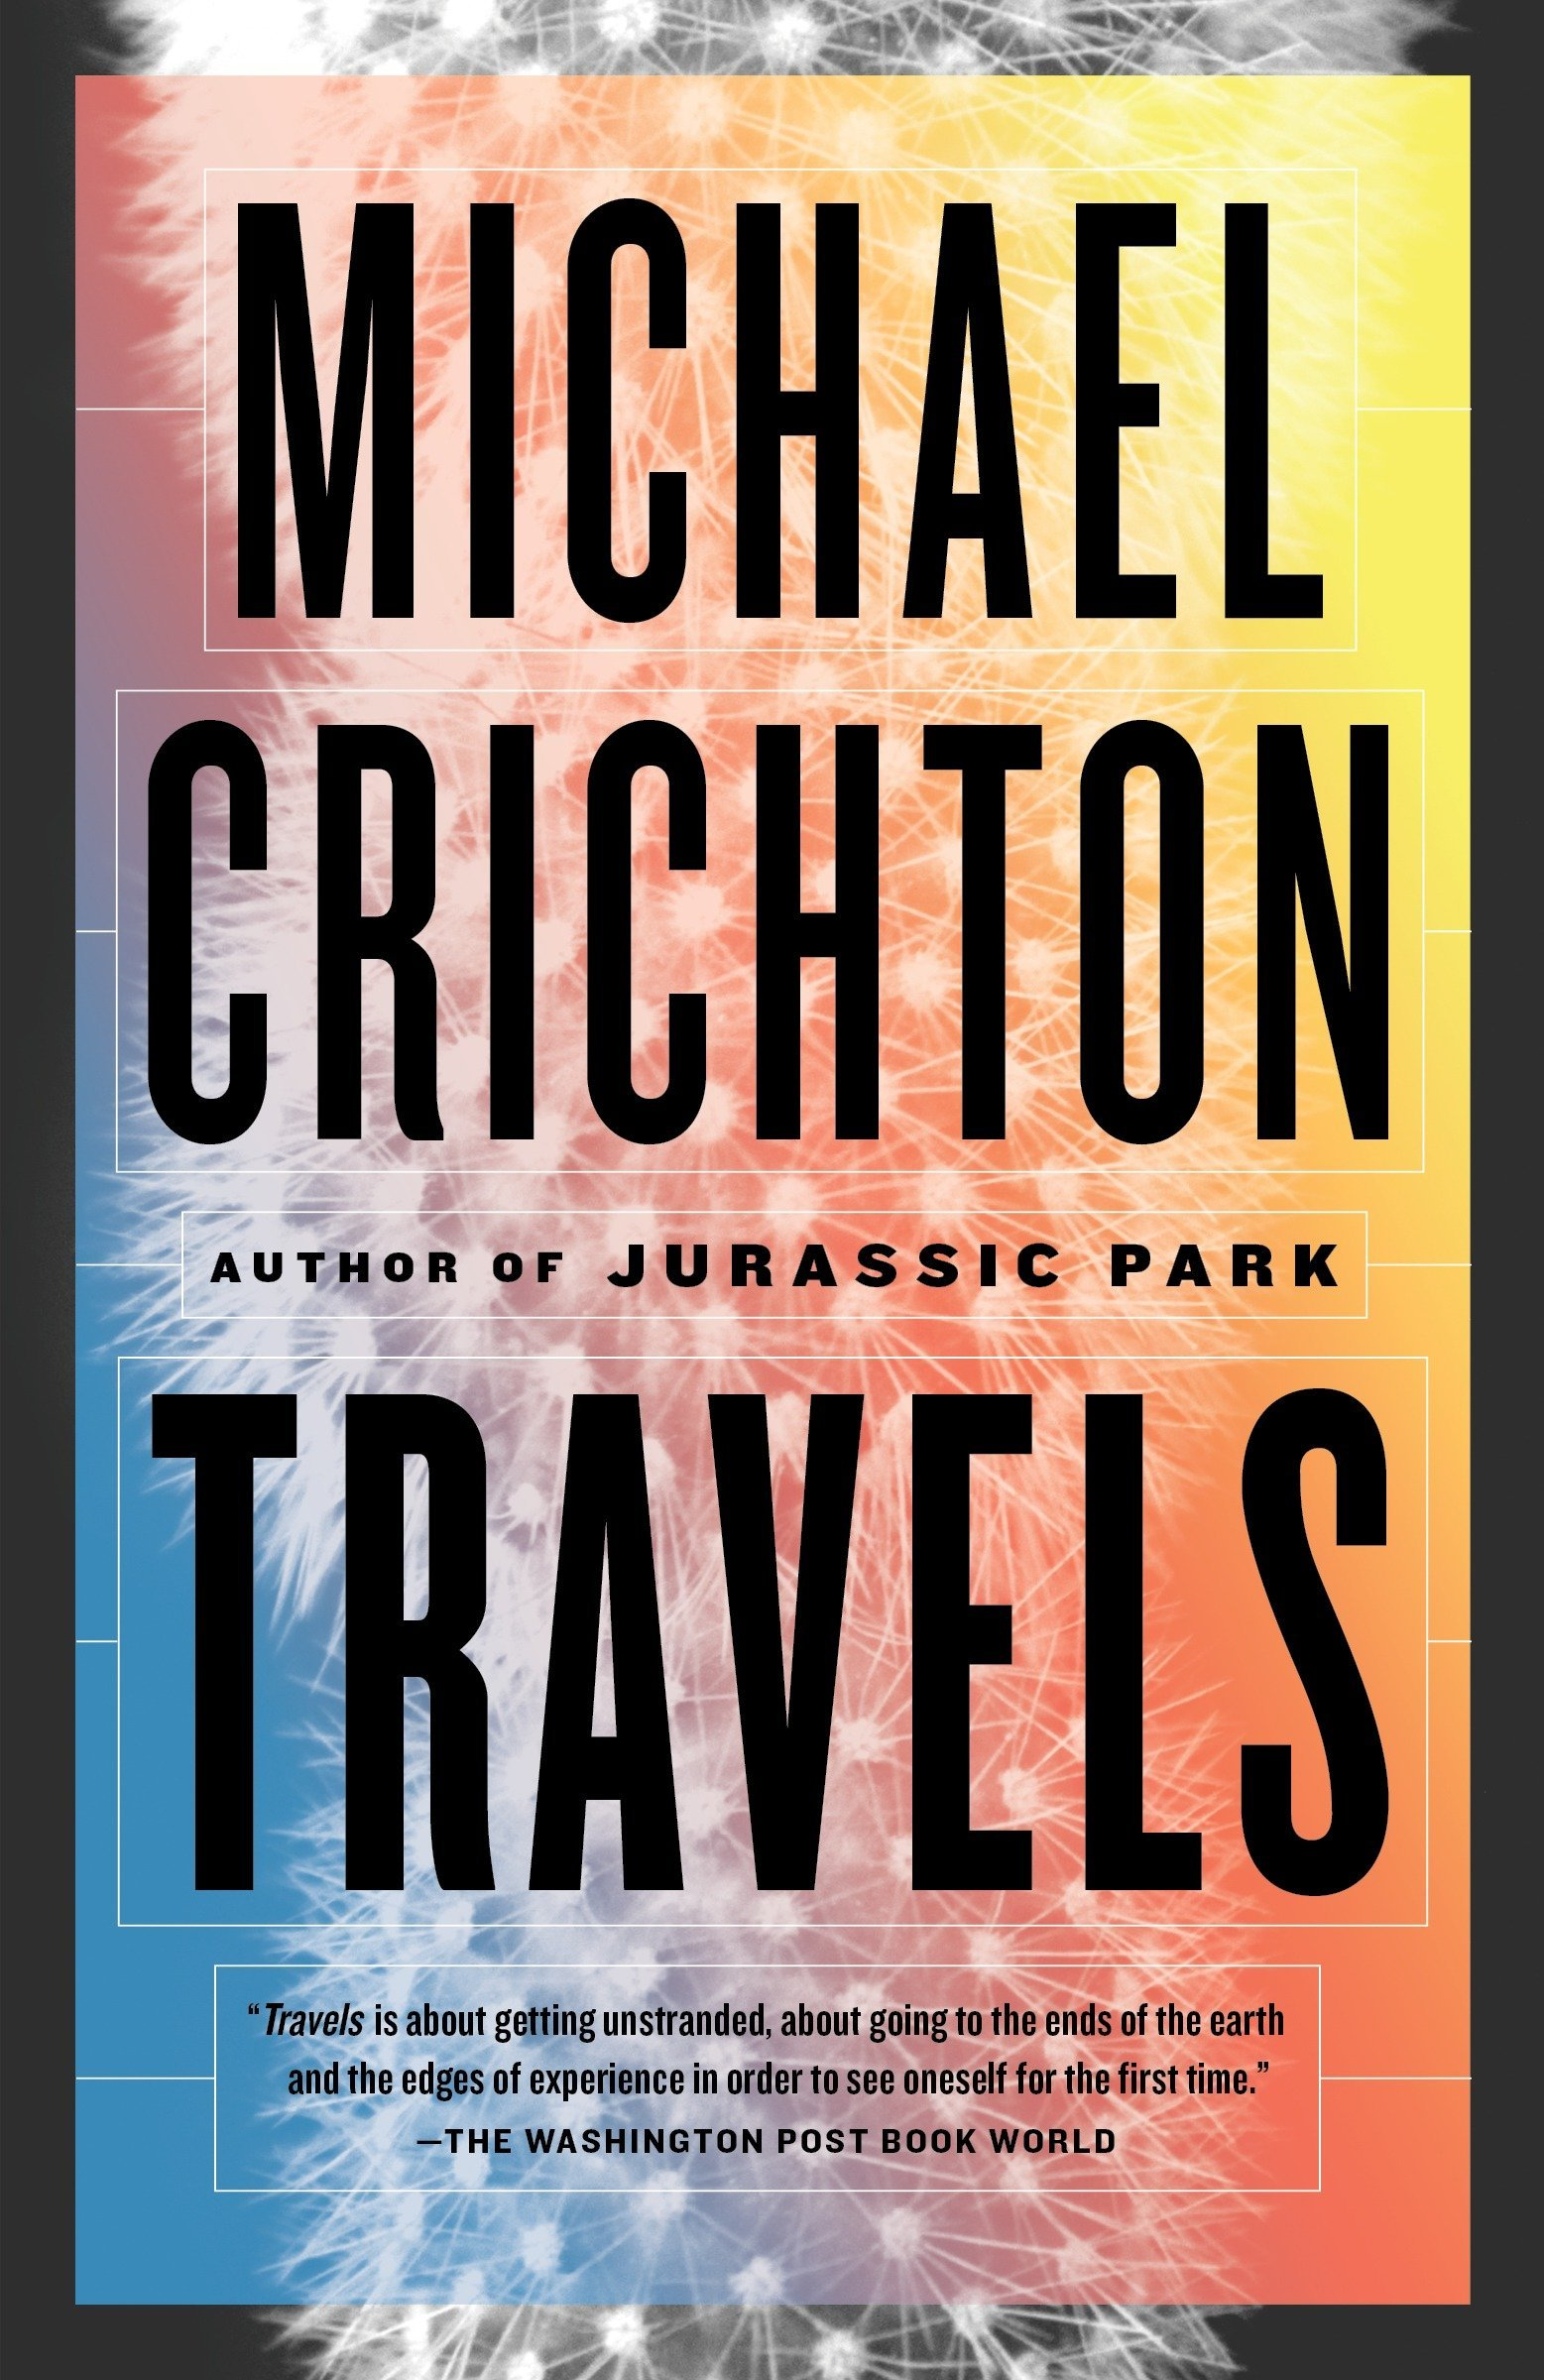 Travels with Michael Crichton.jpg